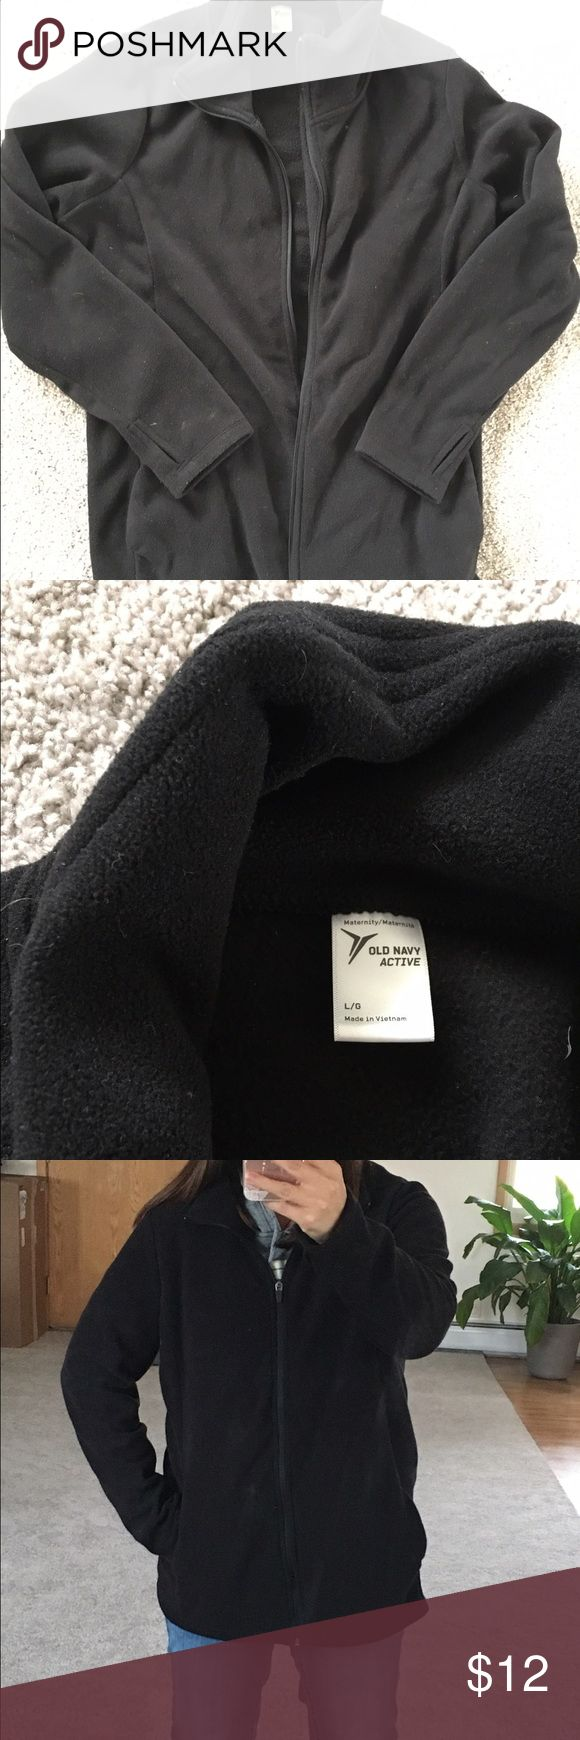 Old Navy Maternity fleece This is an Old Navy Active maternity zip up fleece in black.  Used this through my third trimester.  Side pockets and thumb holes in sleeves to be worn over hands- Very warm and cozy! Old Navy Jackets & Coats